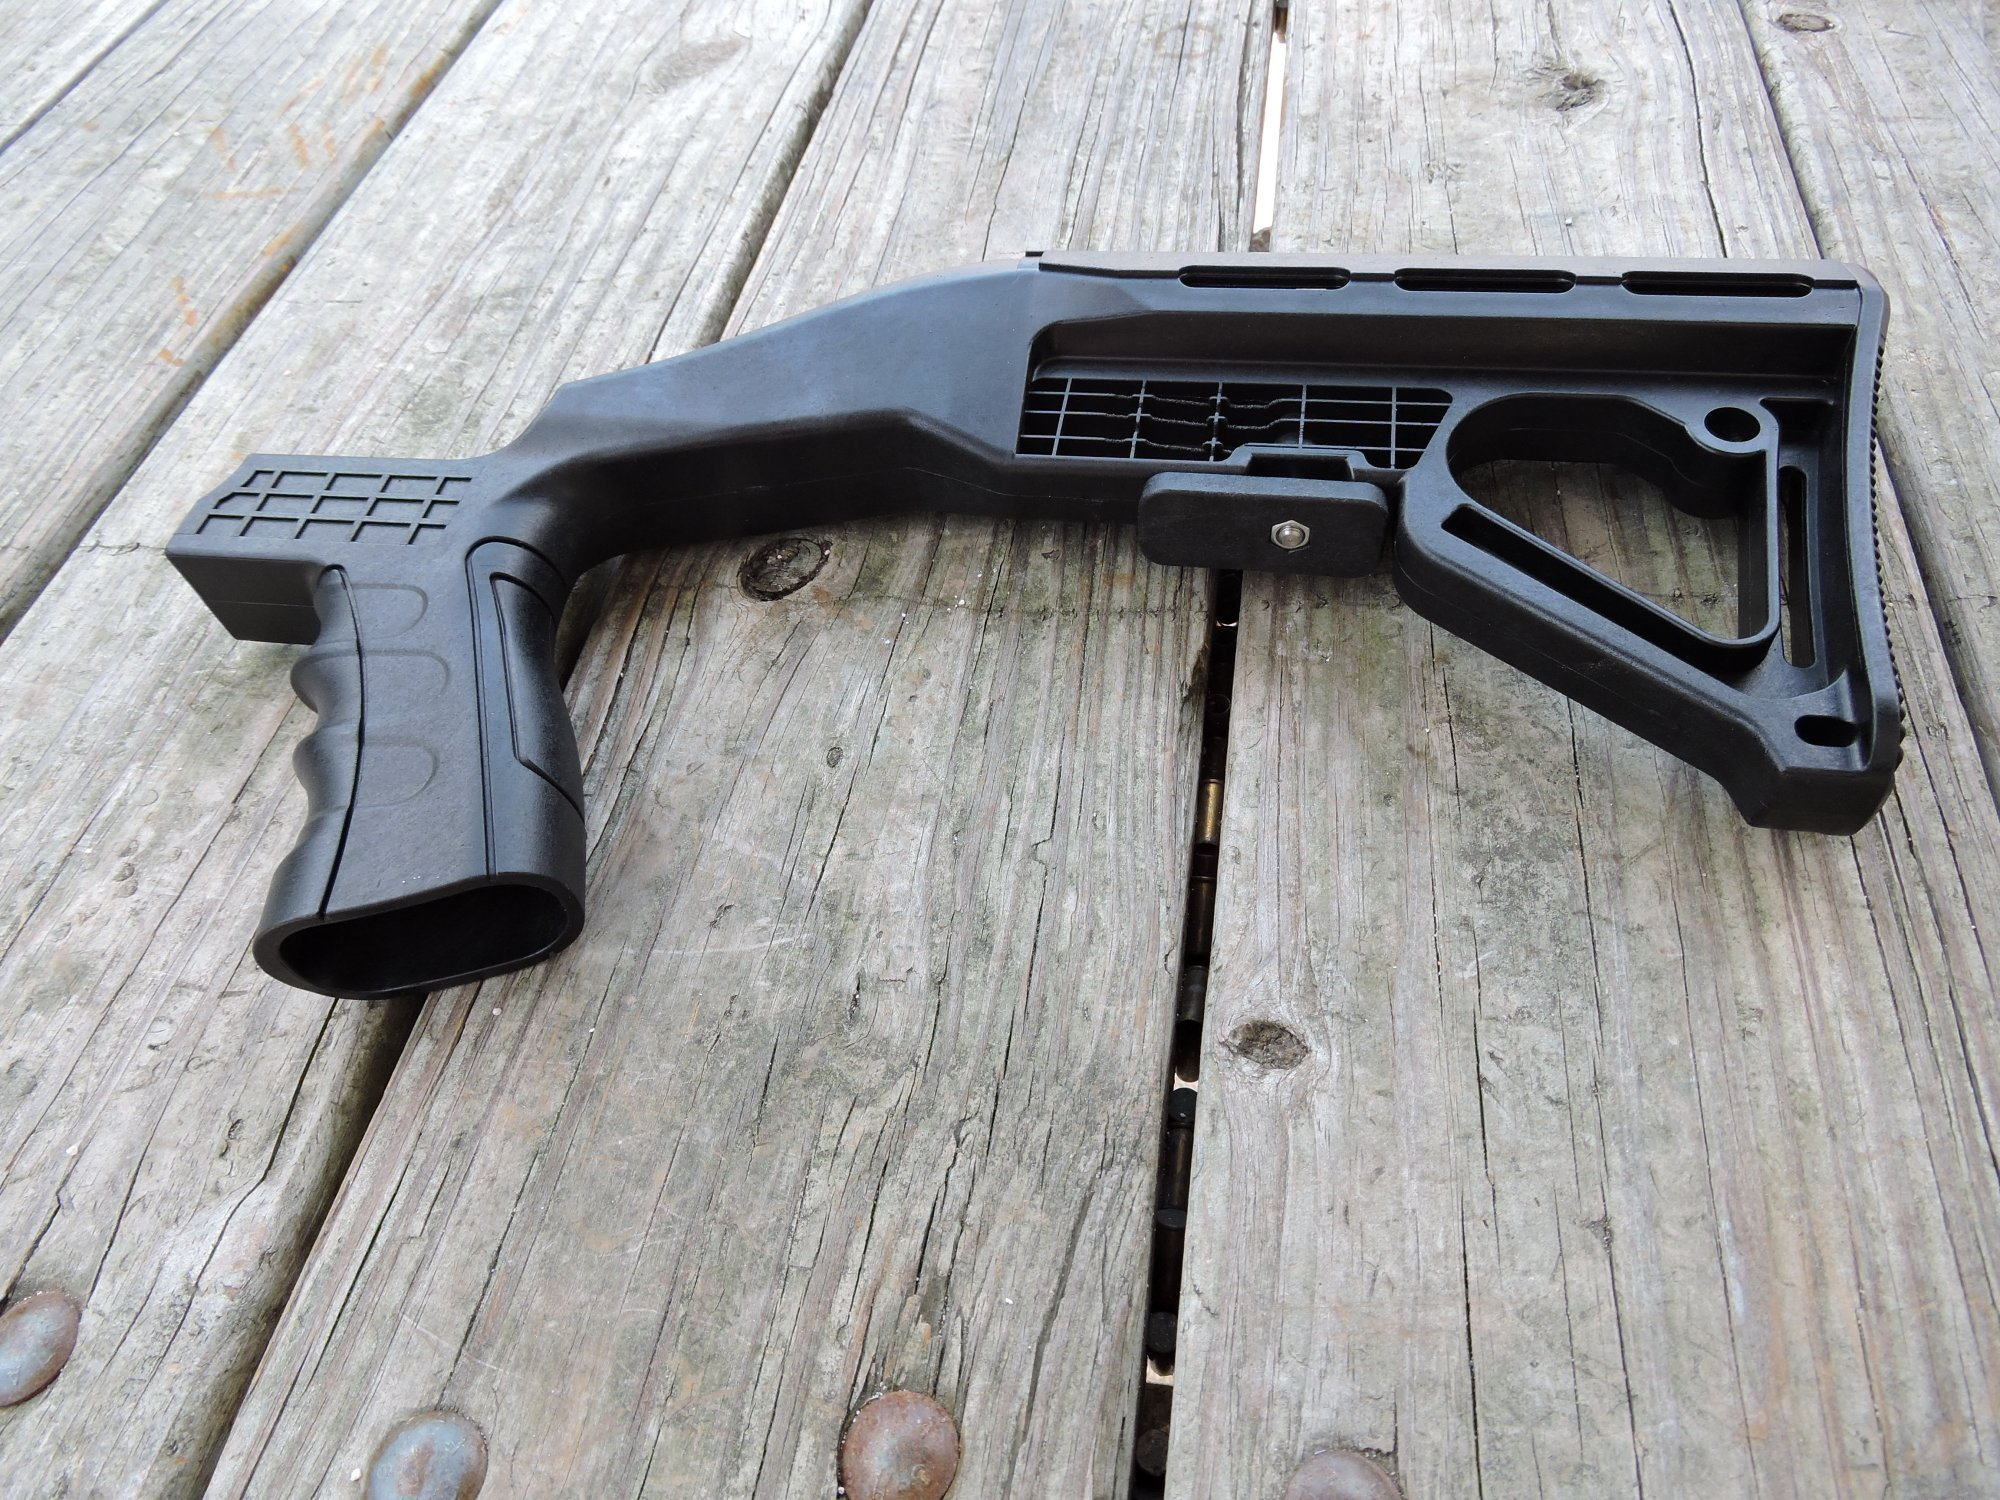 Image result for photos of bump stocks that turn guns into machine guns